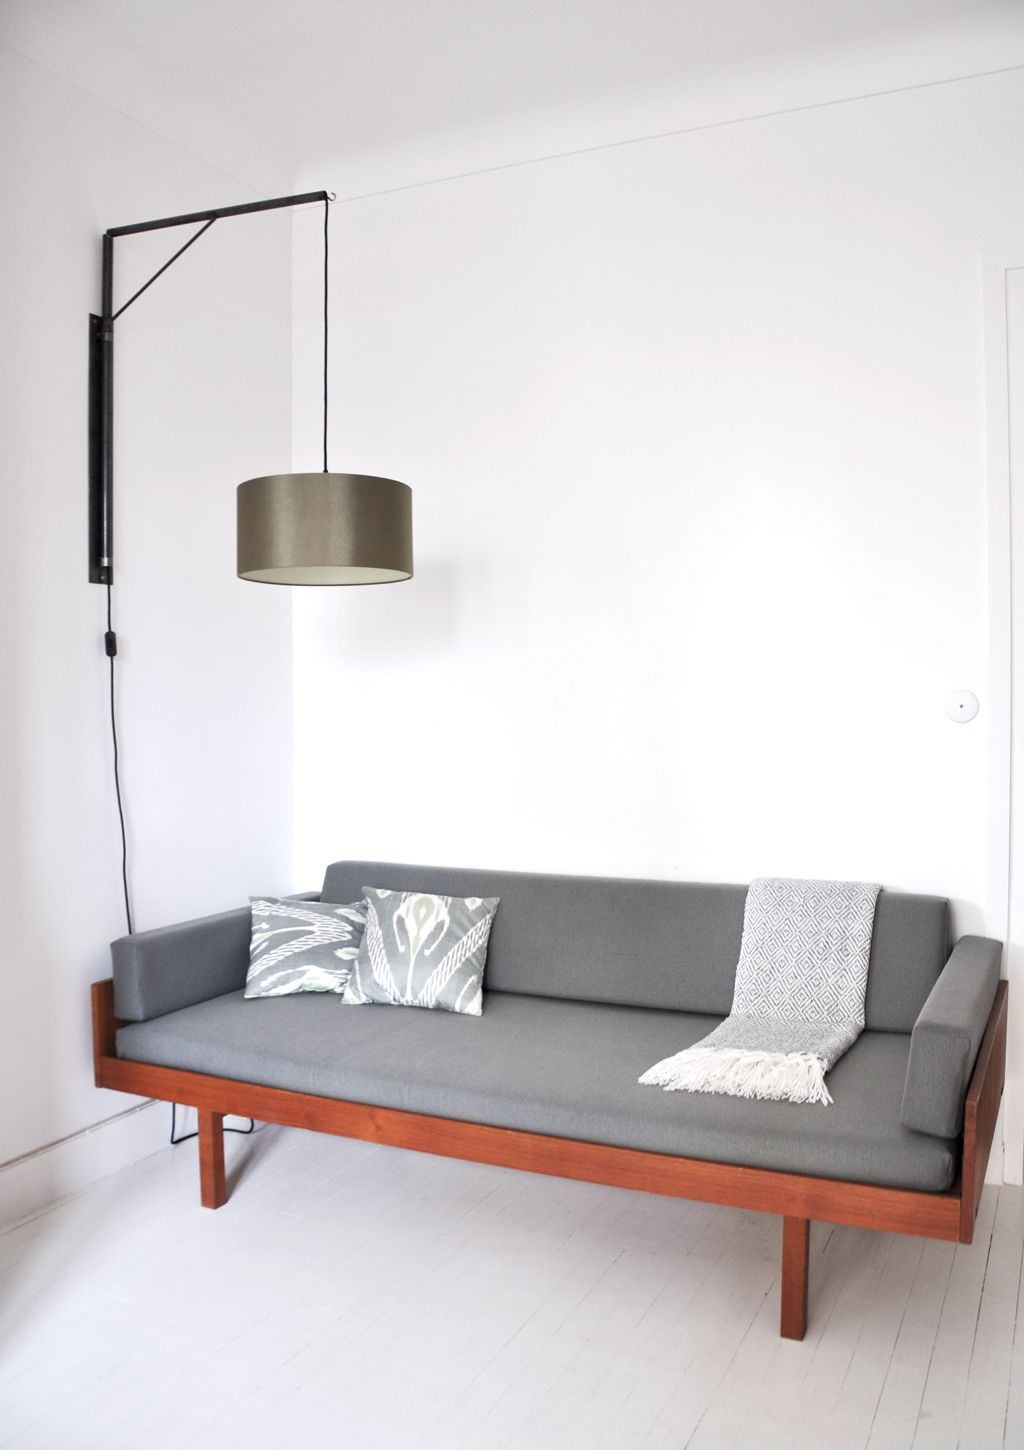 Prestations de décoration - | Daybed, Budgeting and Lights